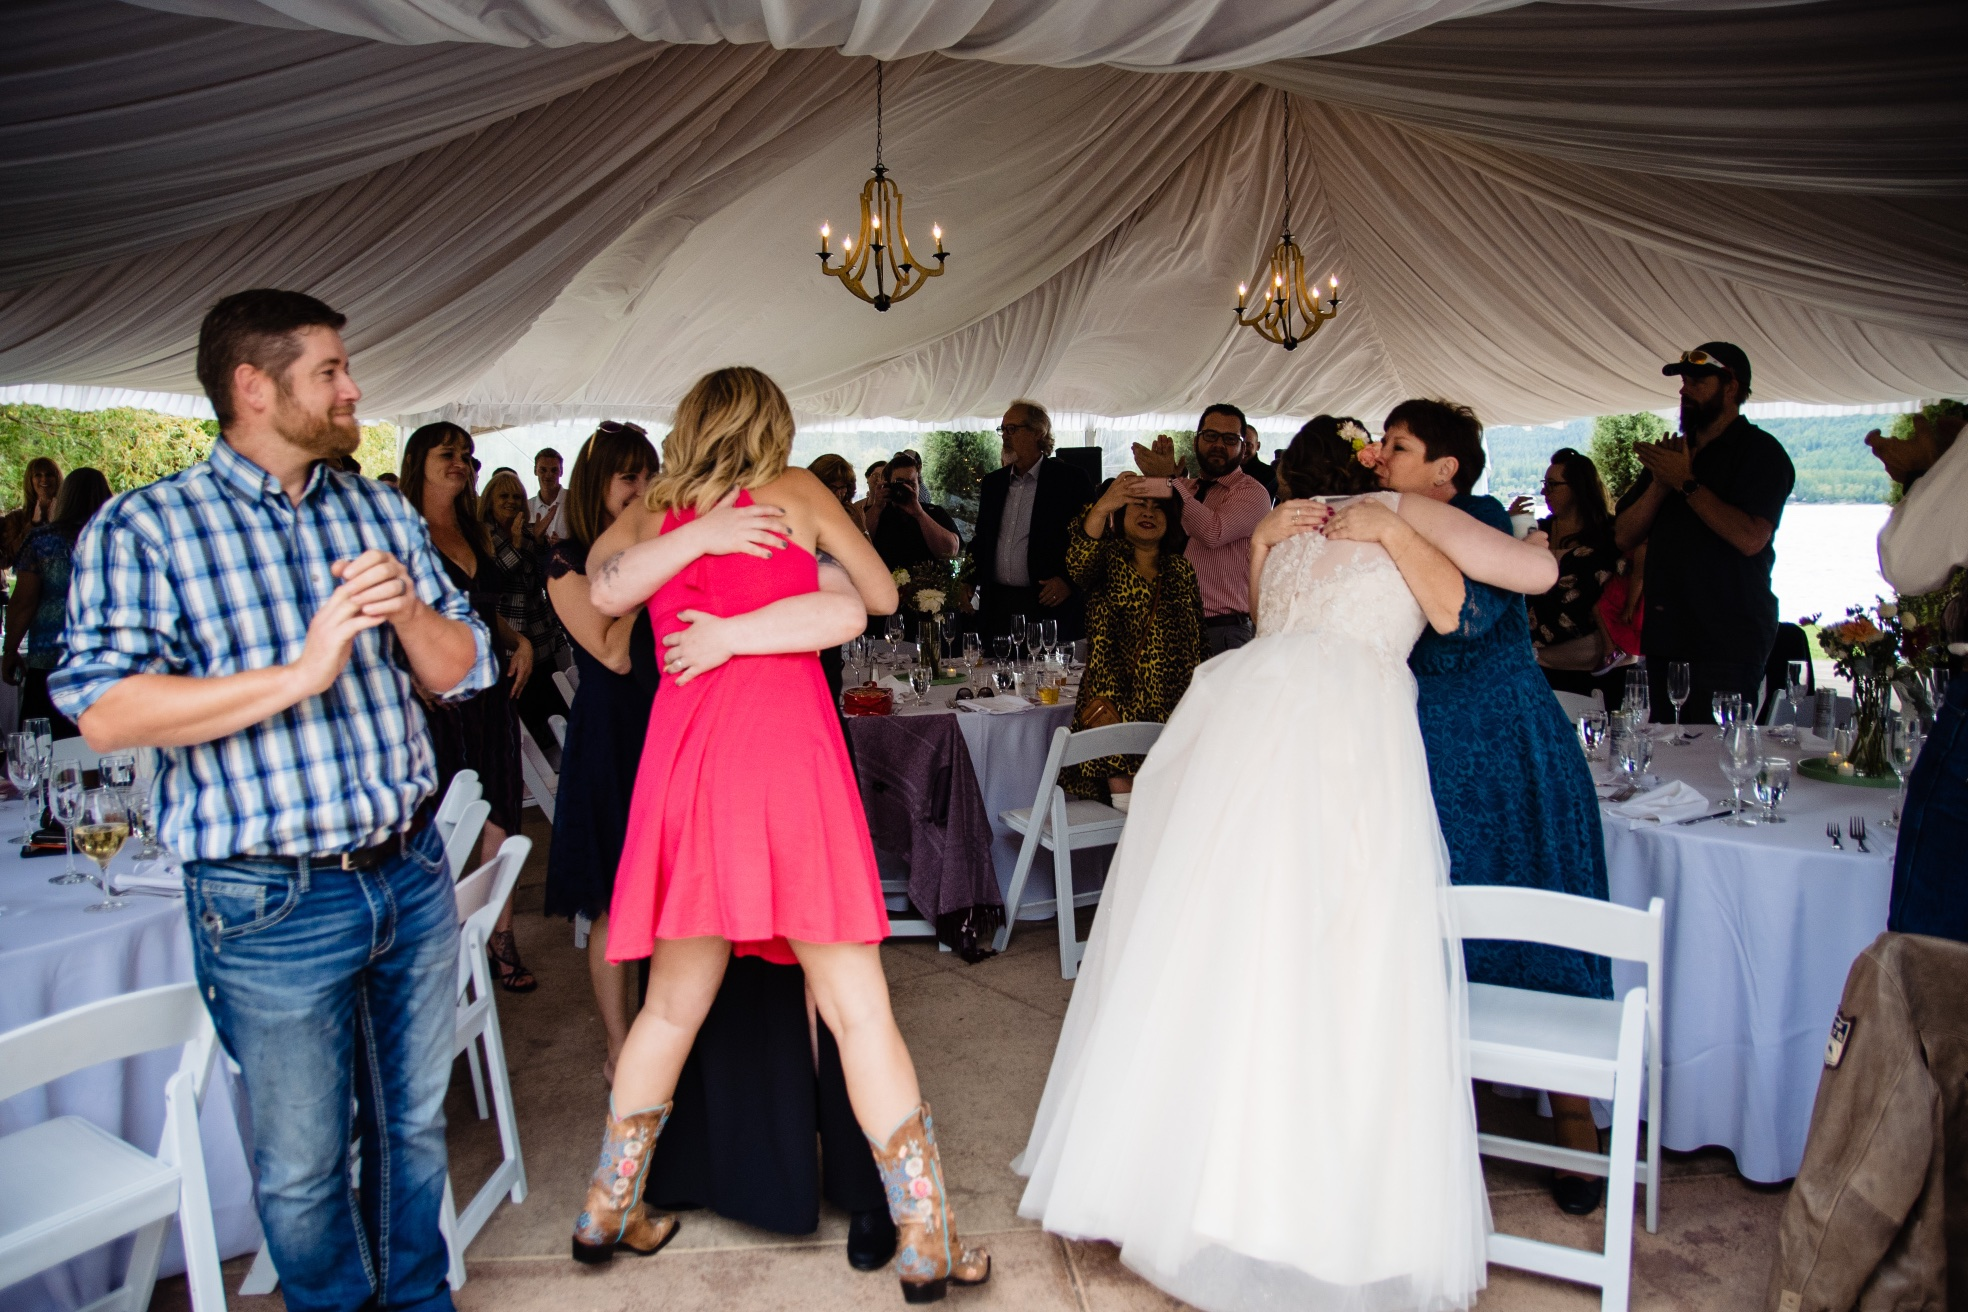 lindseyjanephoto_wedding0081.jpg